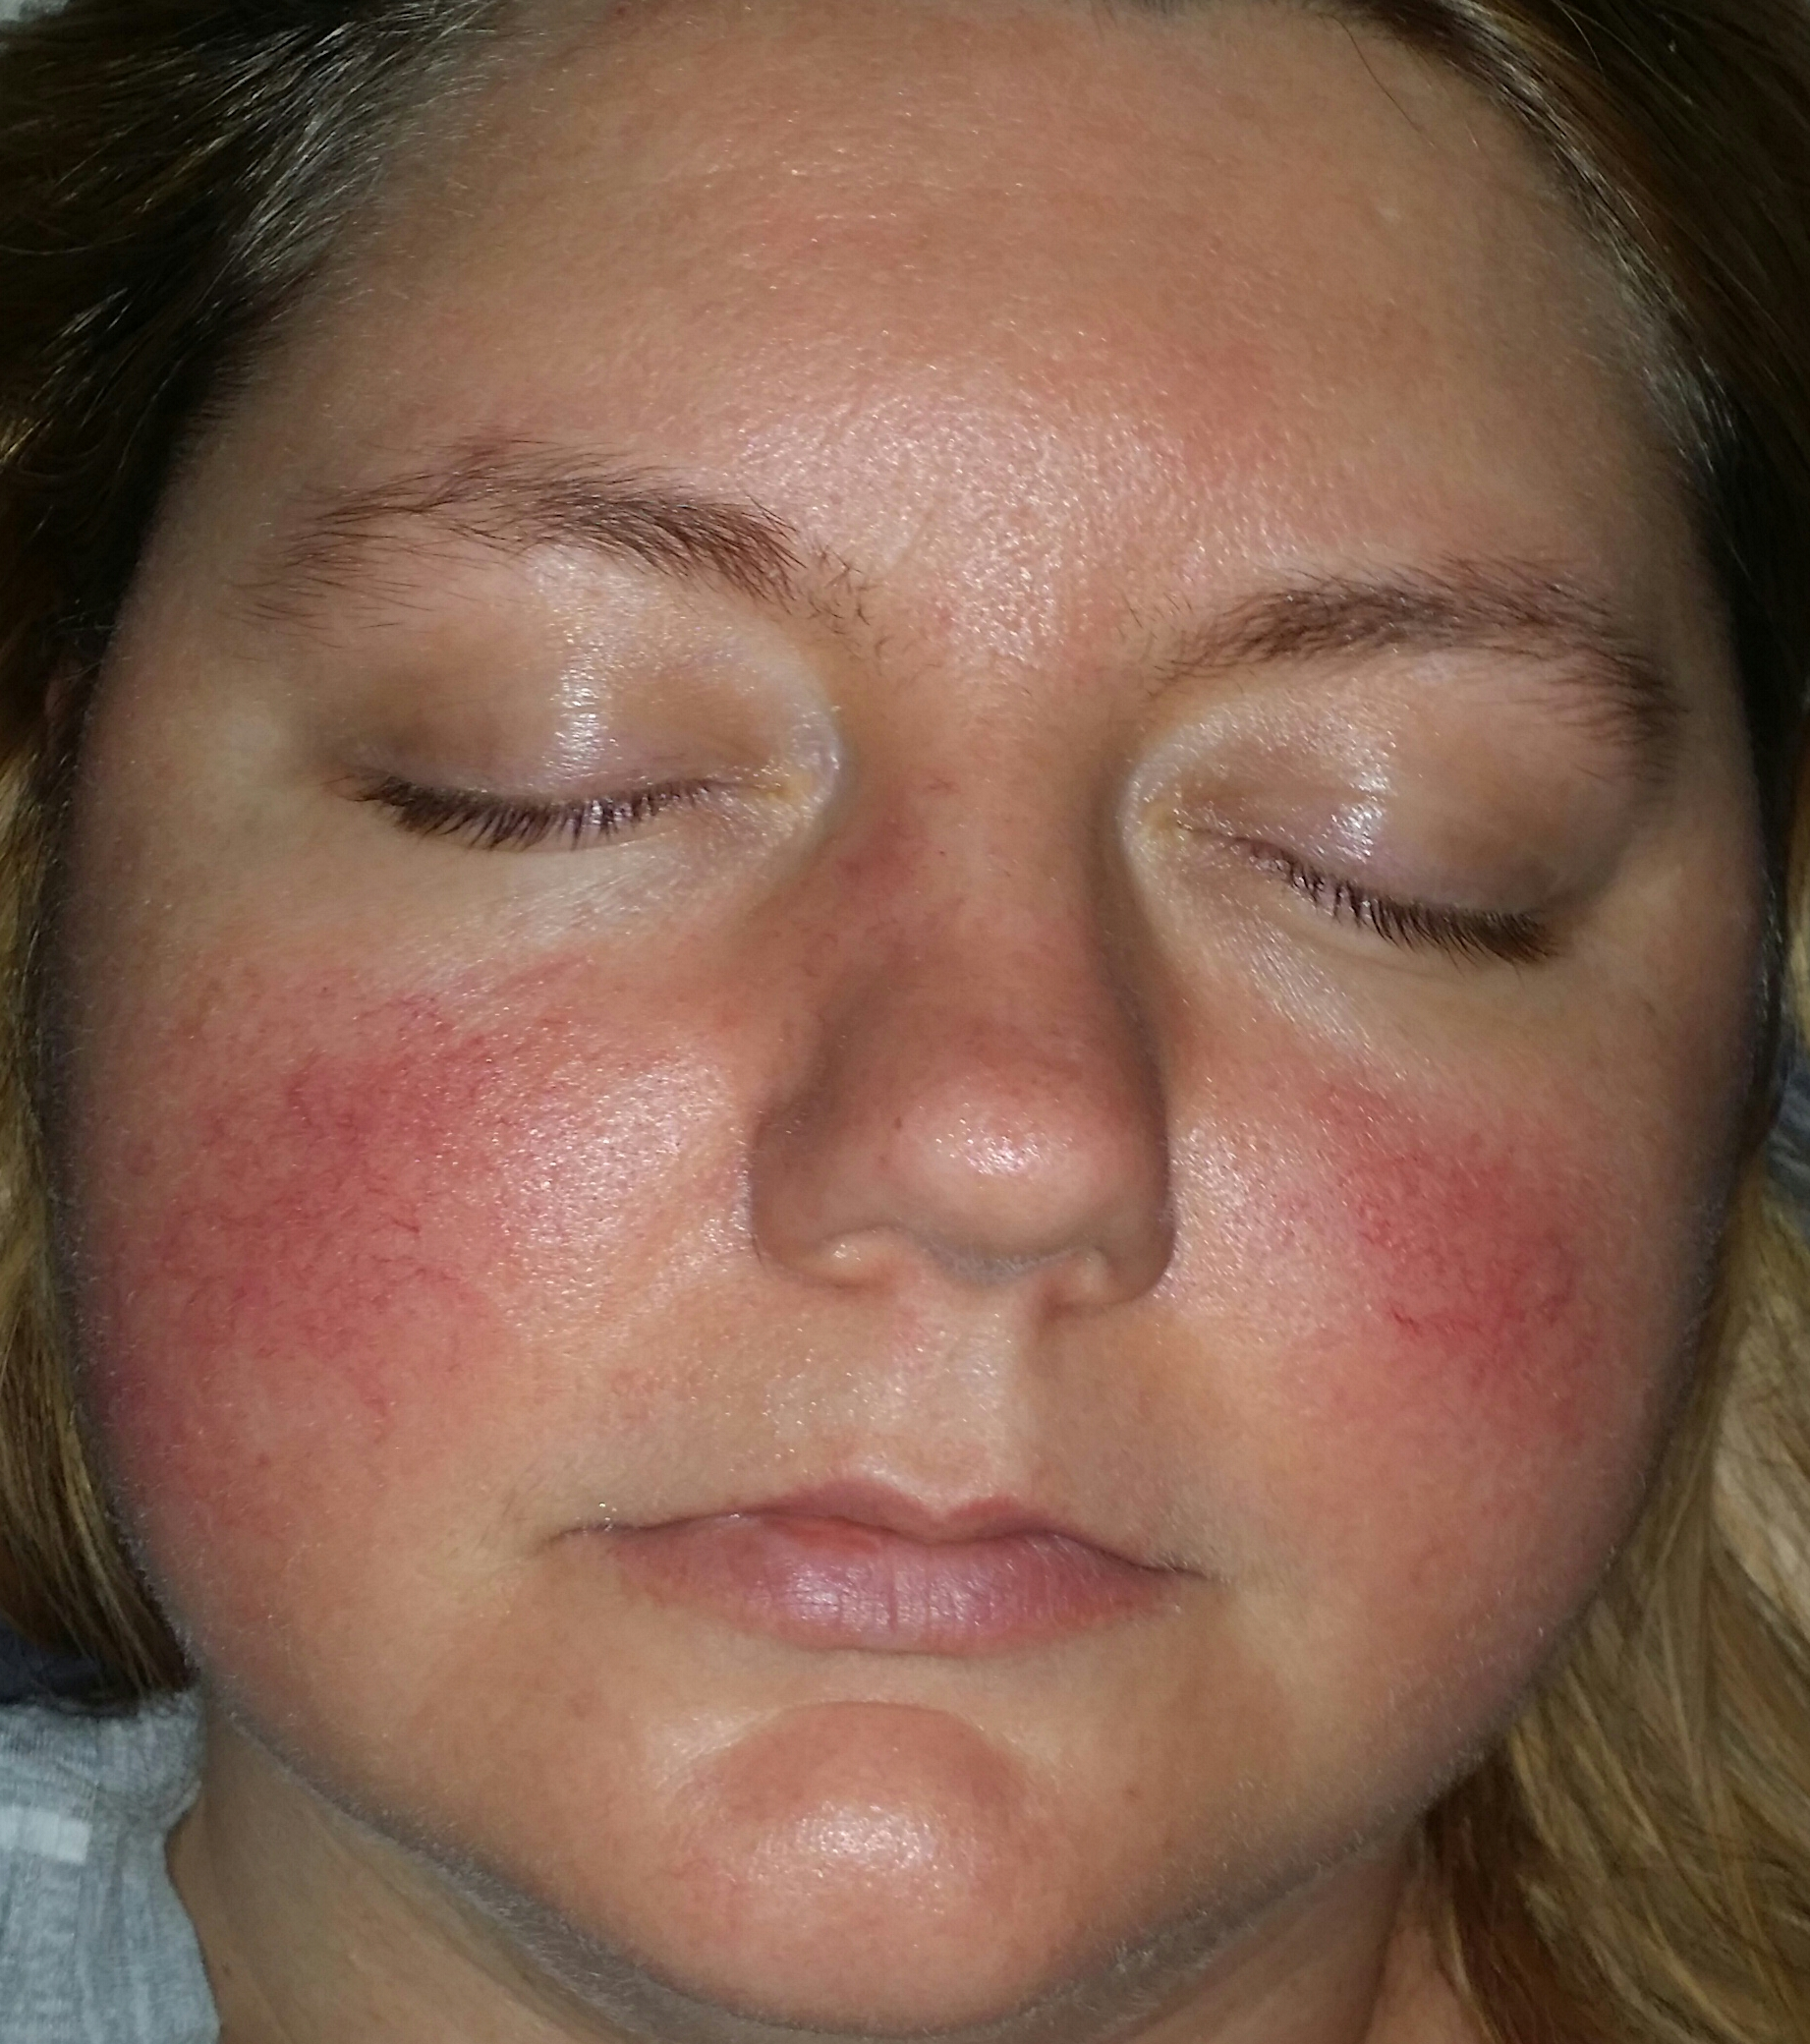 Is it rosacea? - Rosacea & facial redness - Acne.org Community